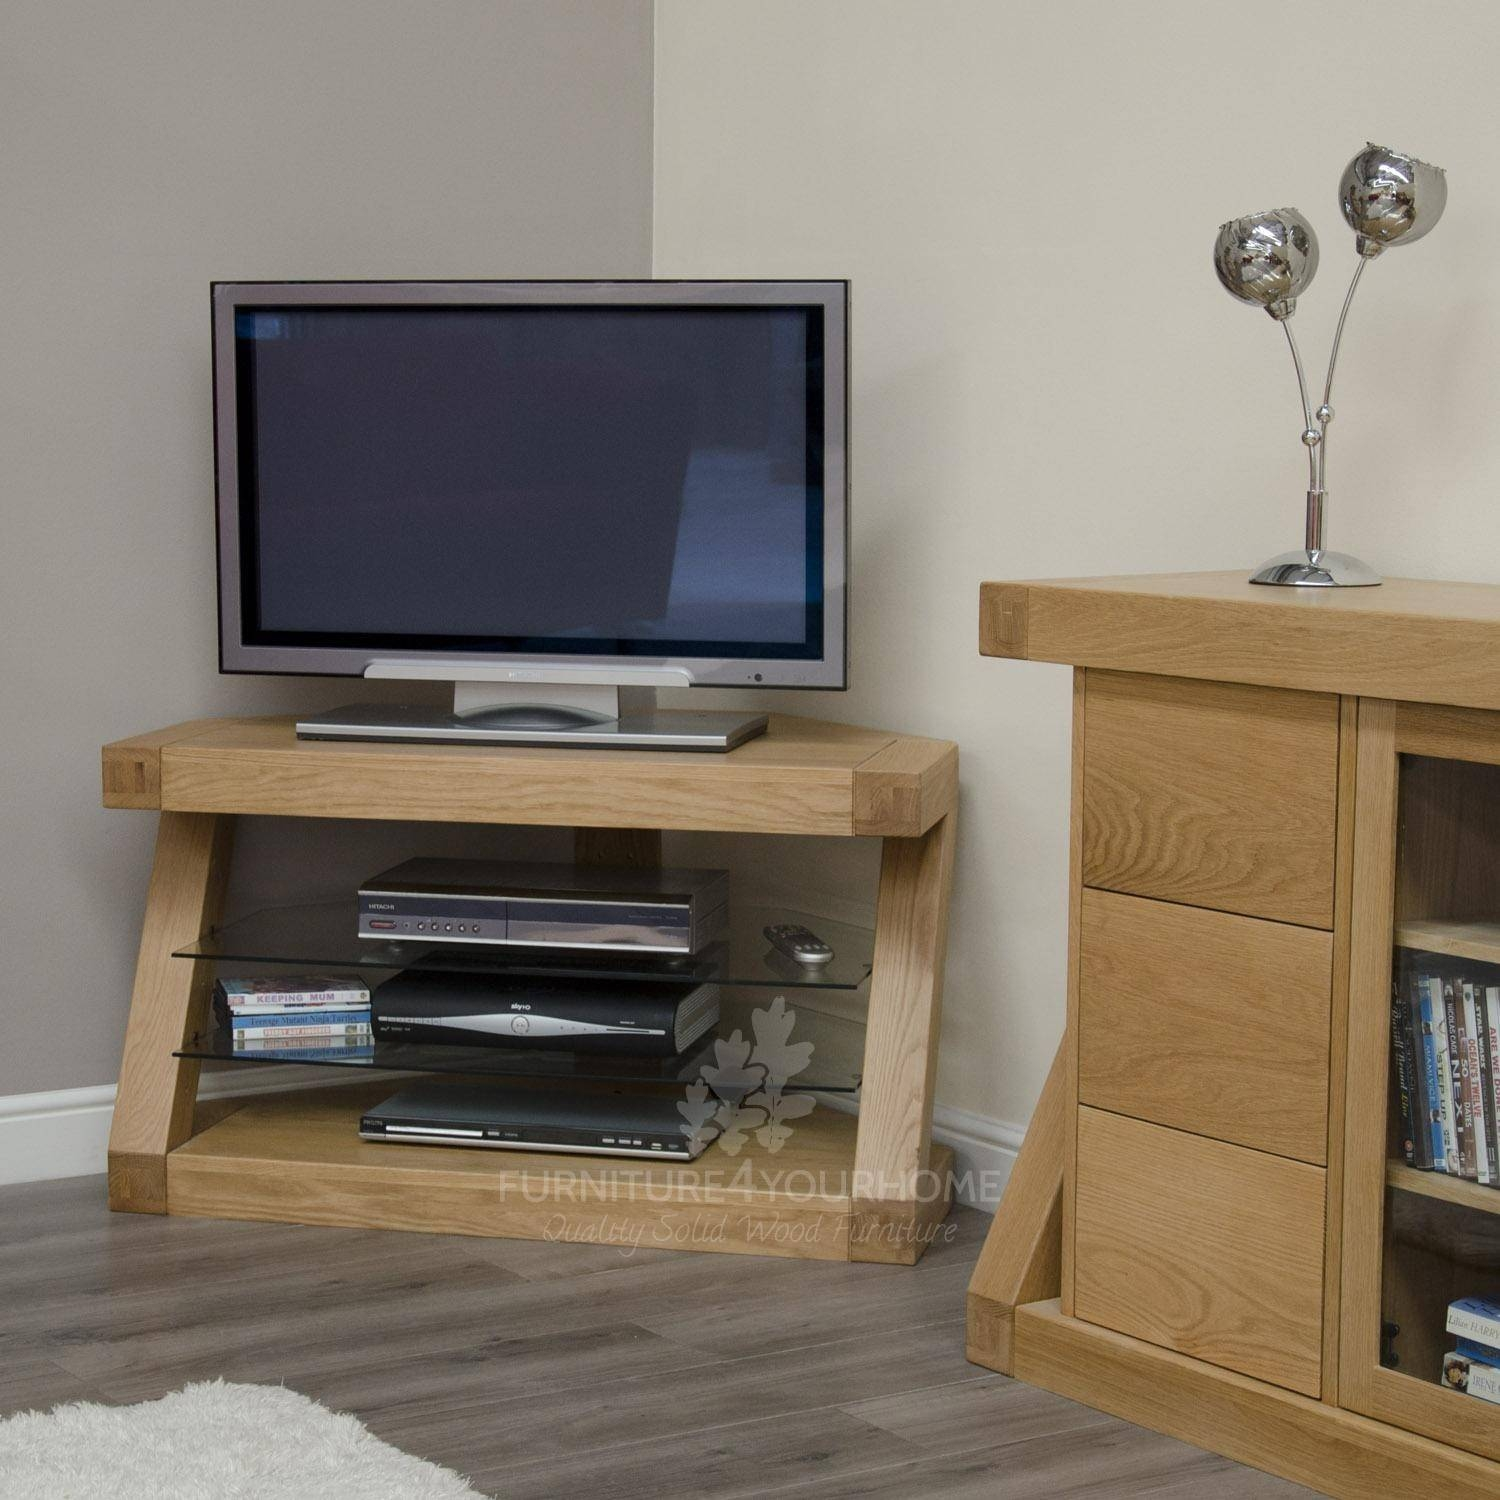 Z Solid Oak Designer Corner Tv Unit | Furniture4Yourhome for Contemporary Oak Tv Cabinets (Image 15 of 15)